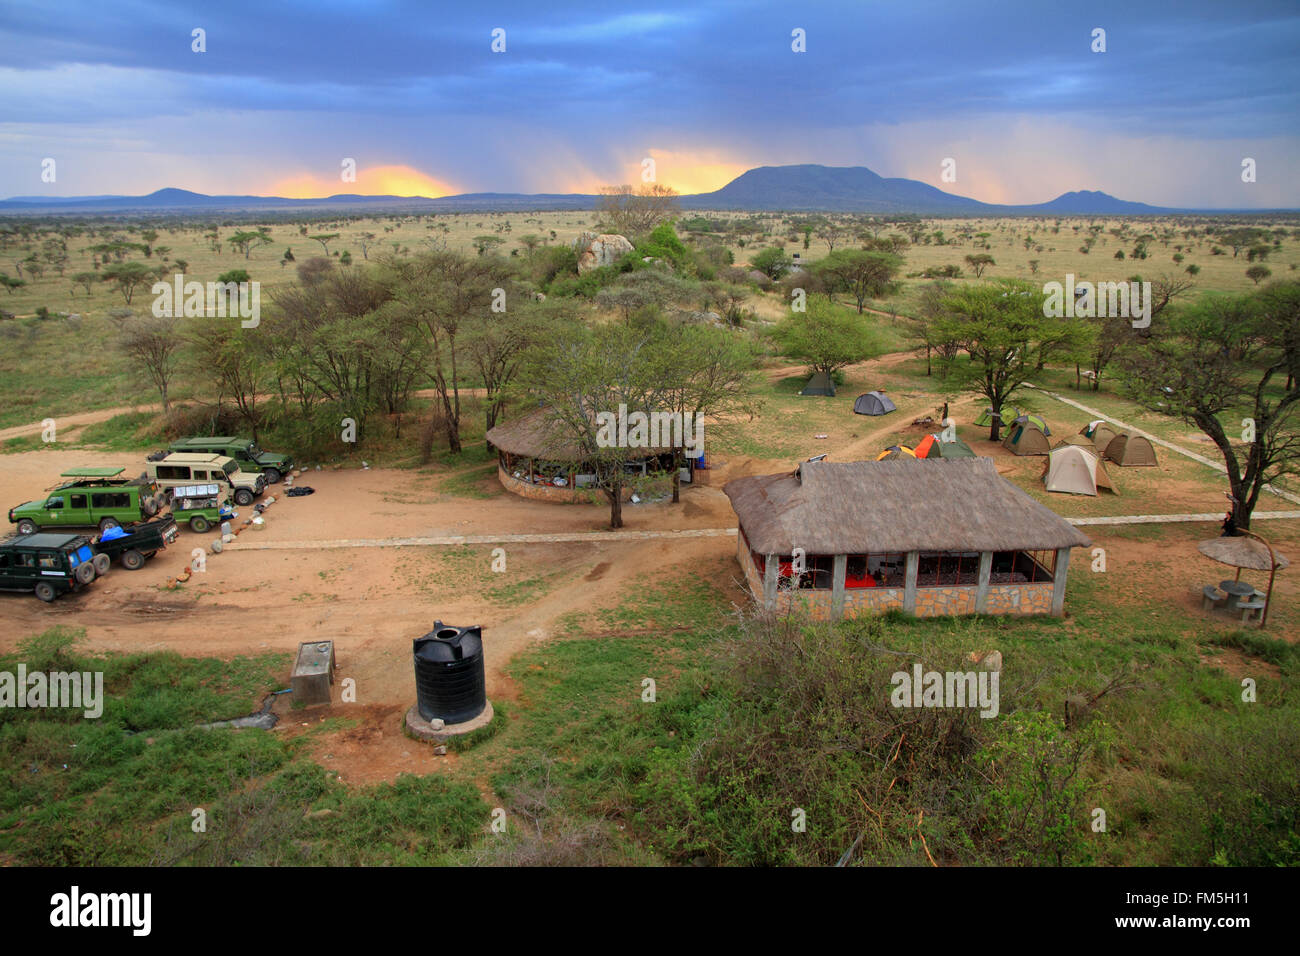 The Pimbi safari camp in the Serengeti, Tanzania - Stock Image